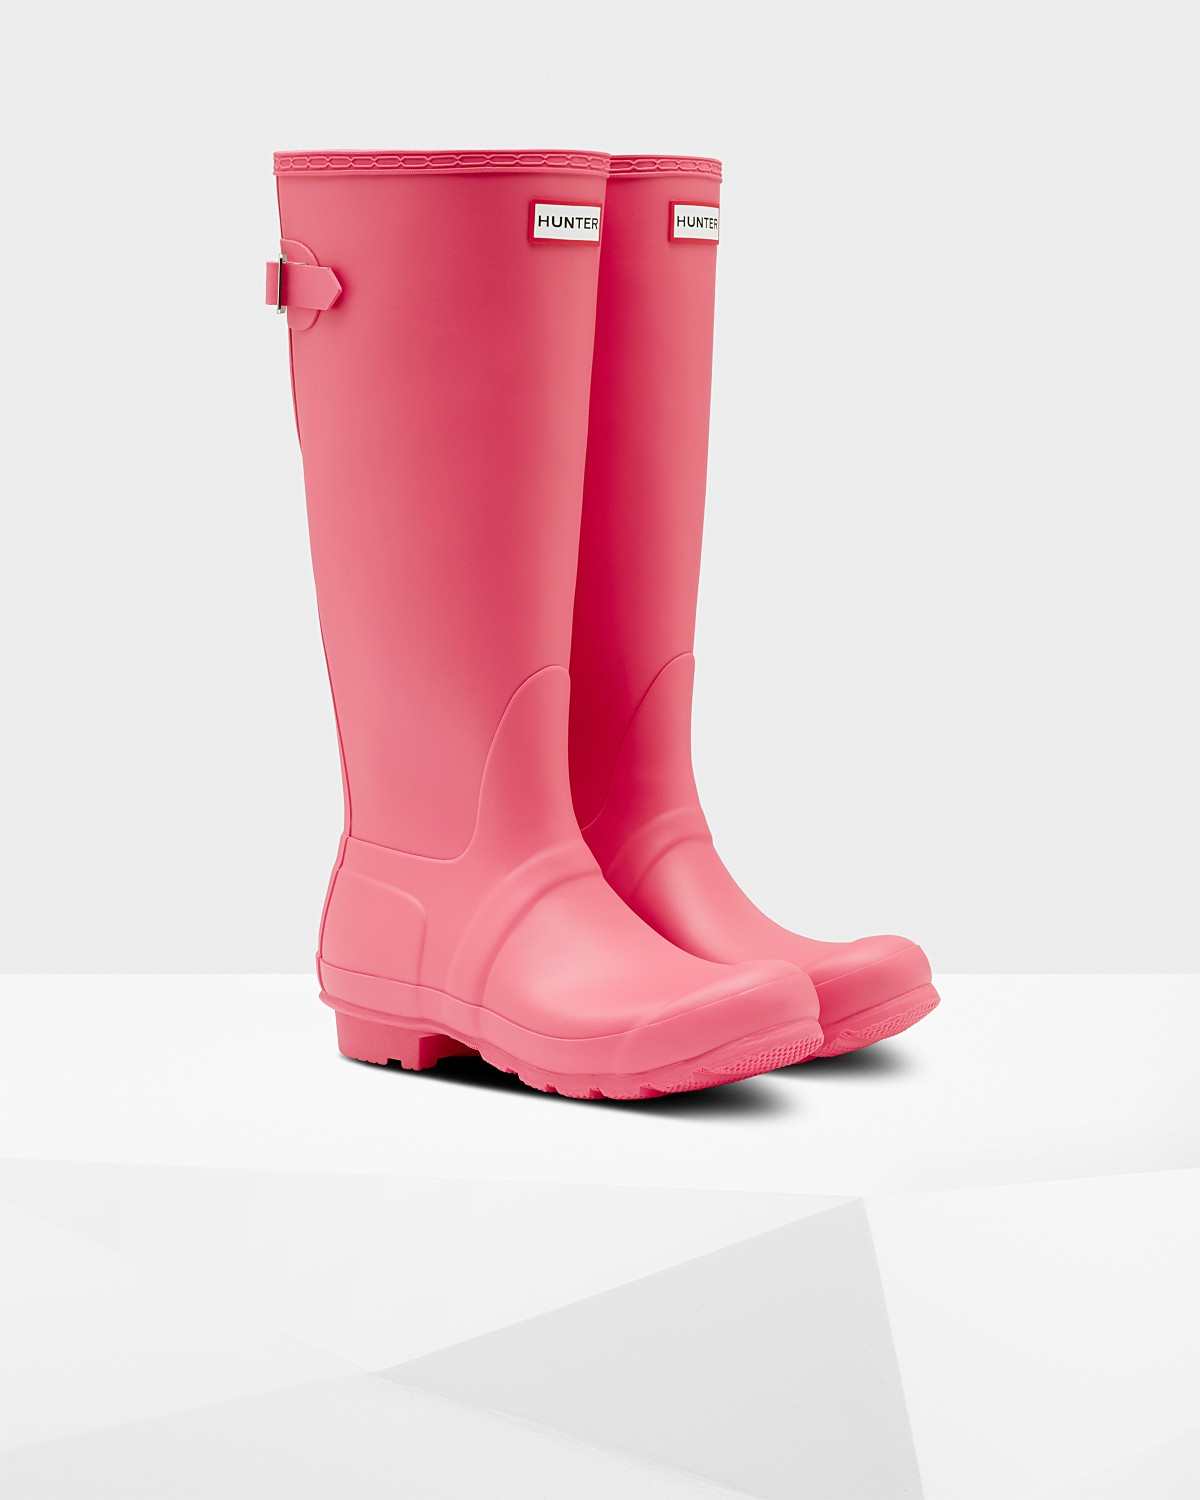 6649eed9 Womens Pink Adjustable Rain Boots | Official Hunter Boots Store